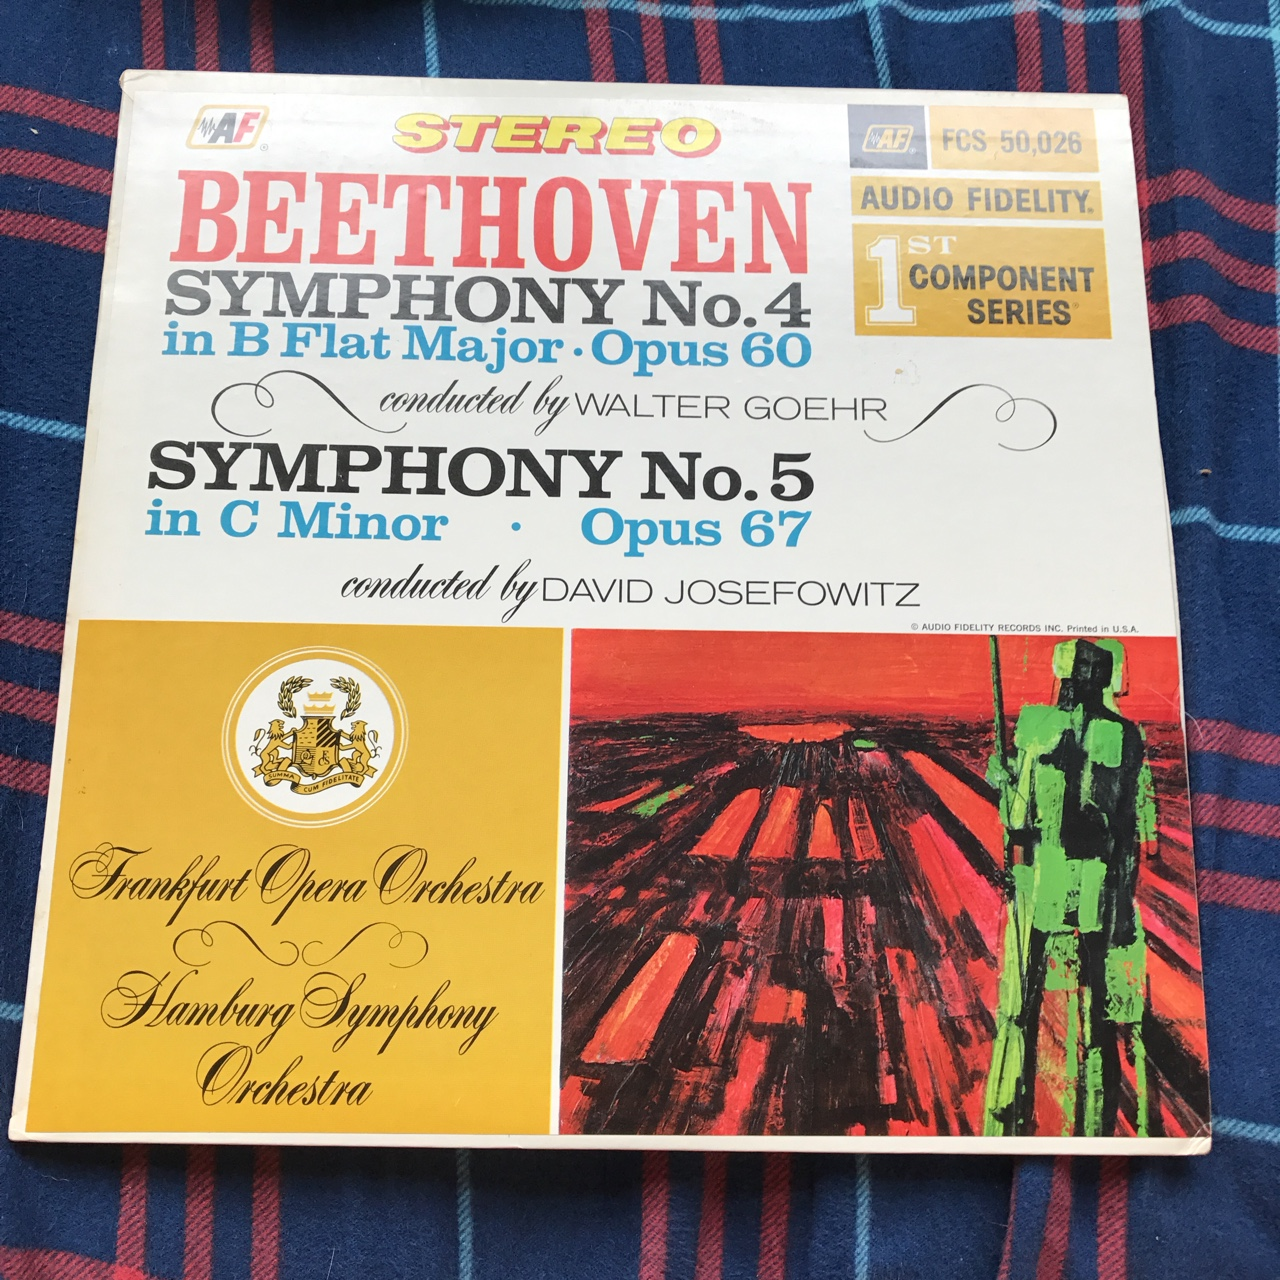 5Th Symphony beethoven's 5th symphony in c minor, op. 67 on - depop